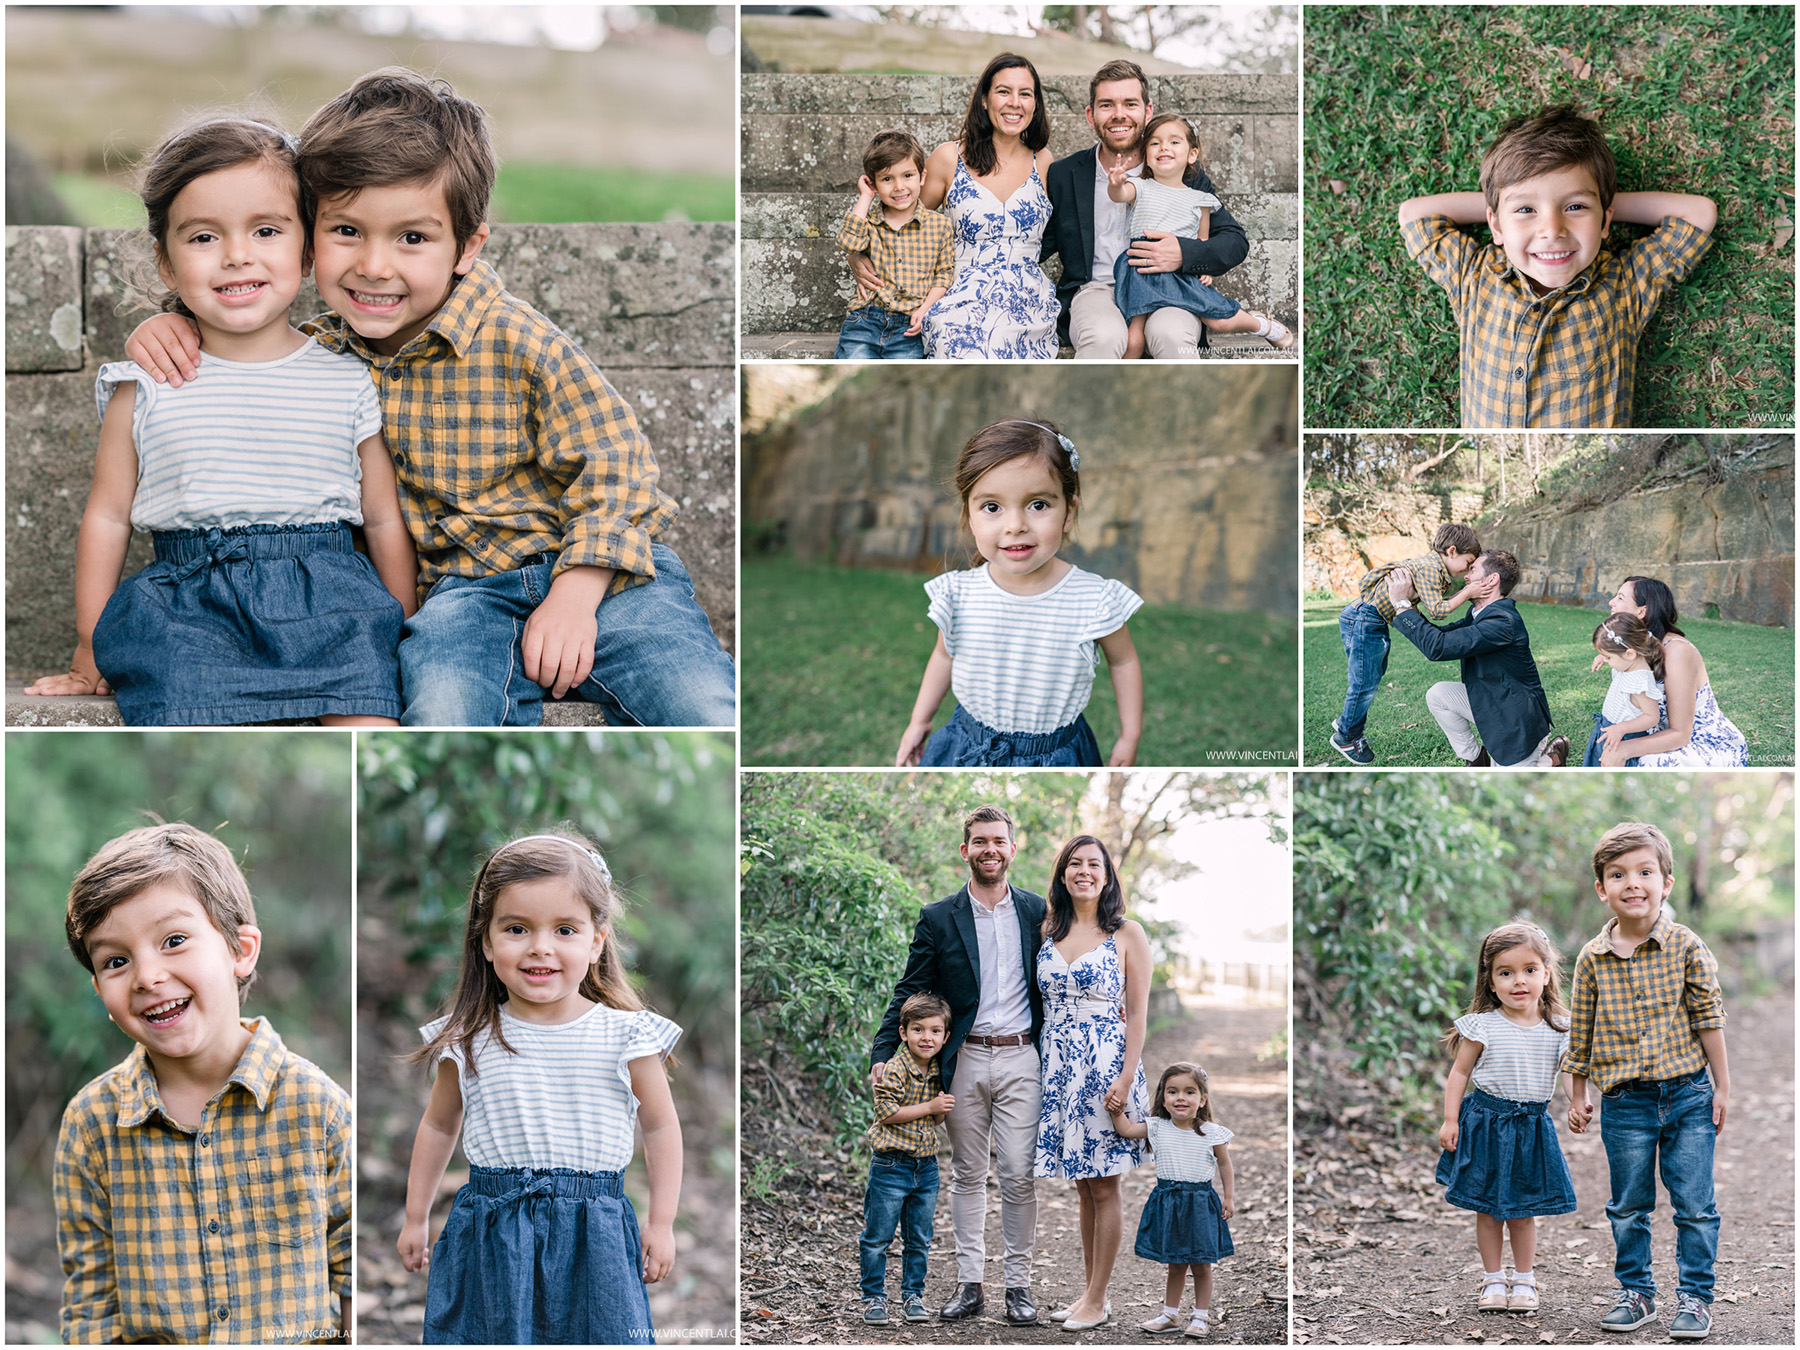 Family Portrait Session at Bradleys Head Amphitheatre Mosman